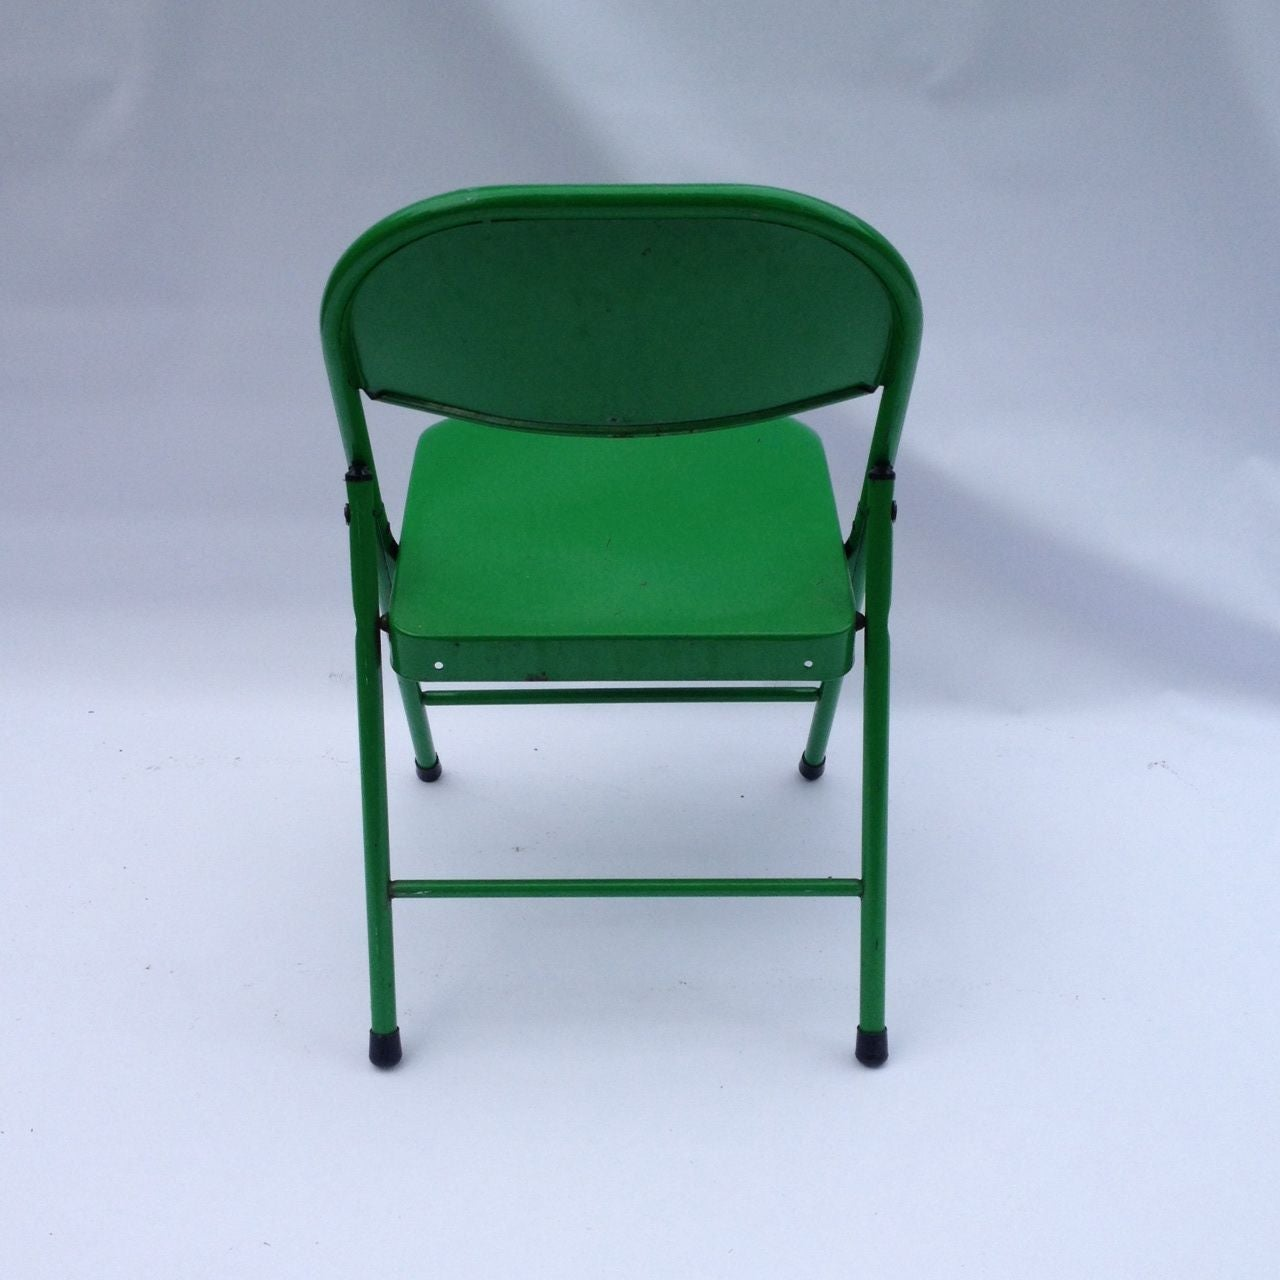 Delicieux Mid Century Kelly Green Chair   Image 3 Of 5